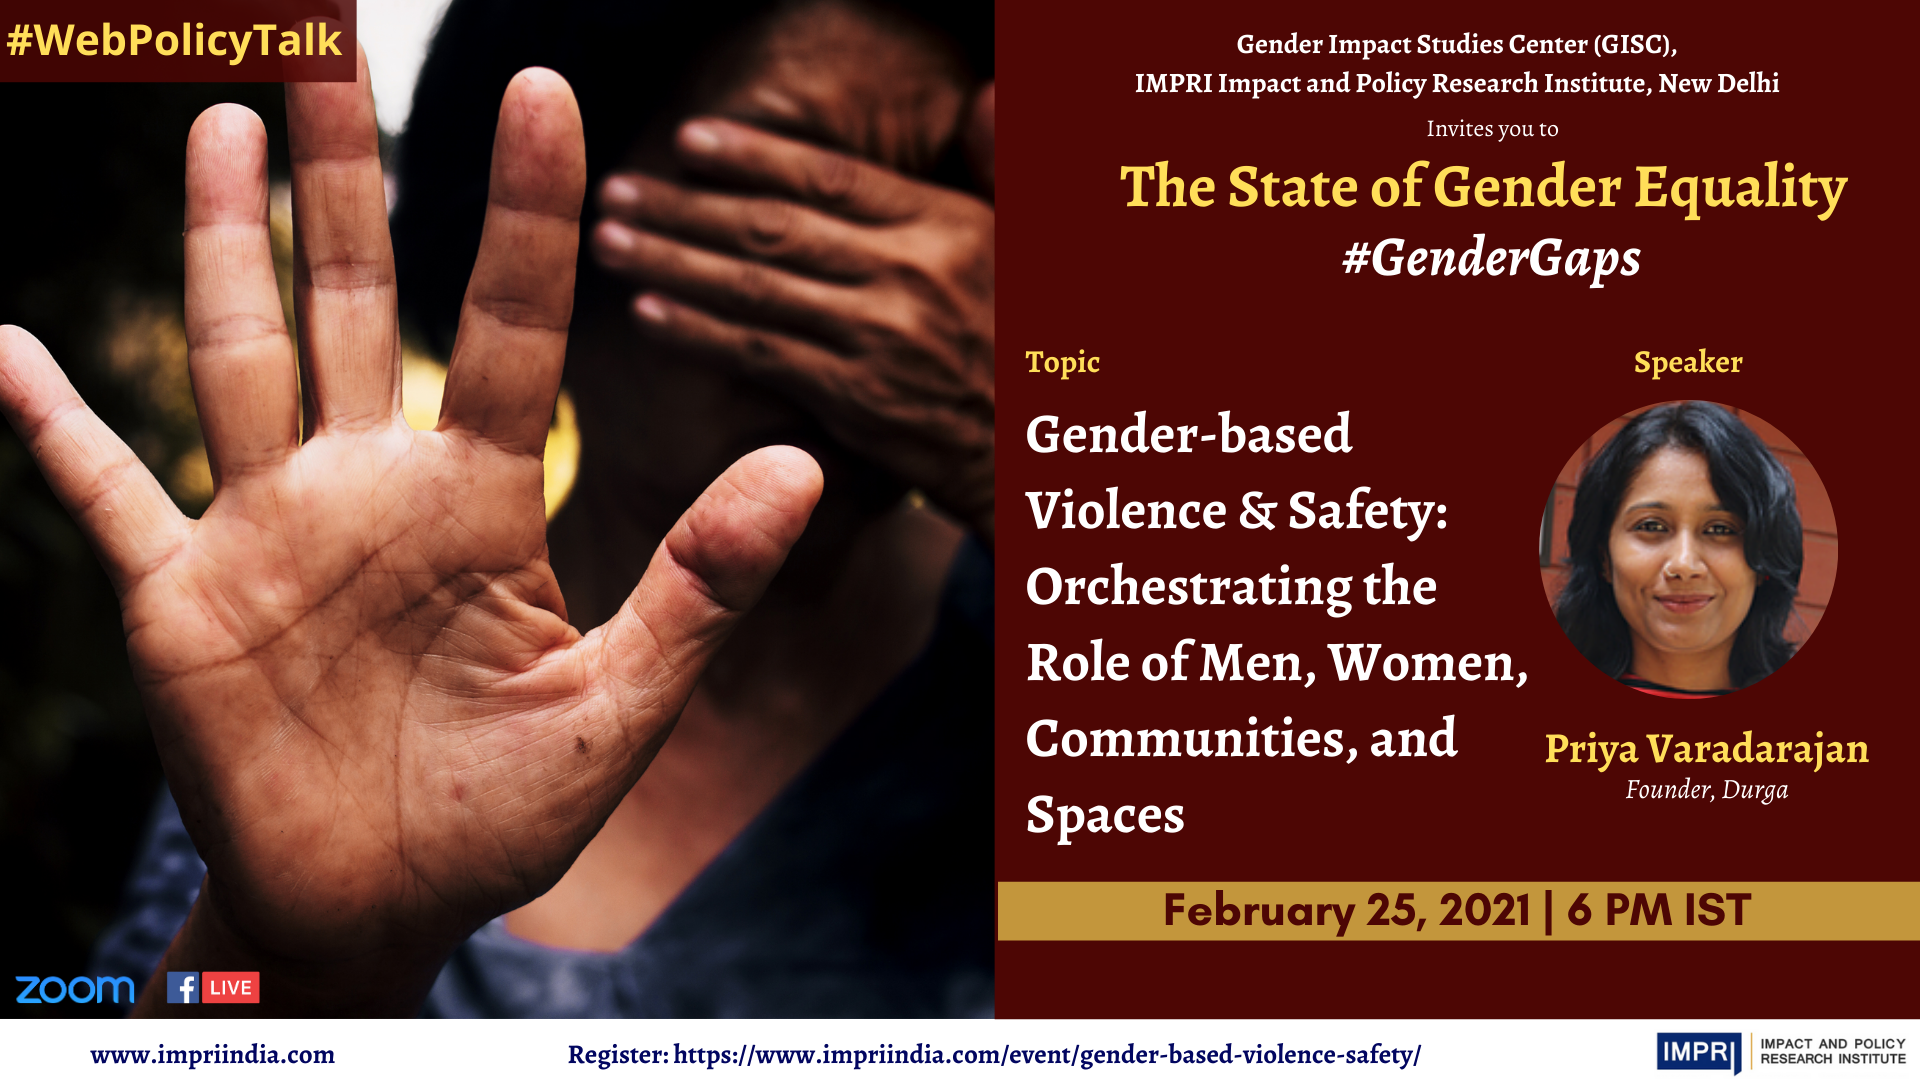 Gender based Violence Safety Orchestrating the Role of Men Women Communities and Spaces